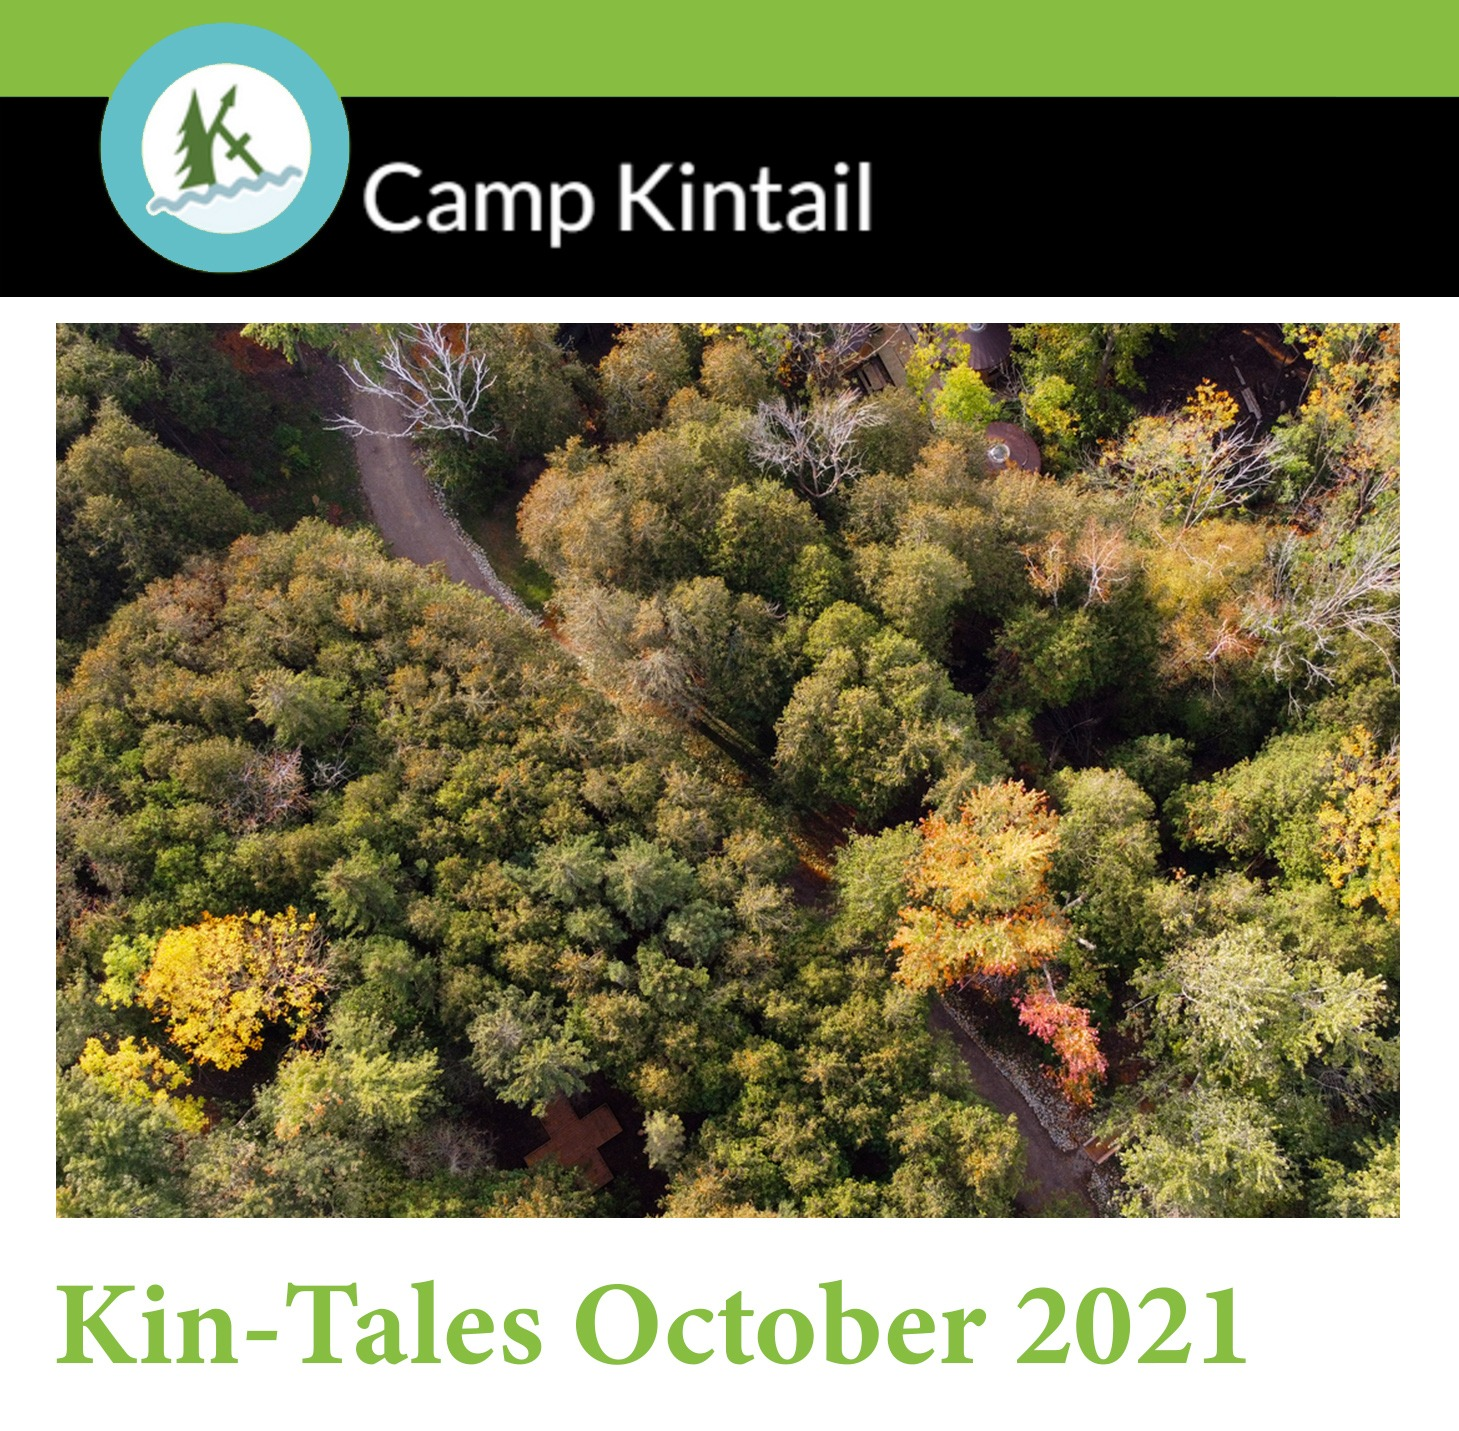 Title Text: Kin-Tales October 2021. Image: Trees views from a drone in autumn colours